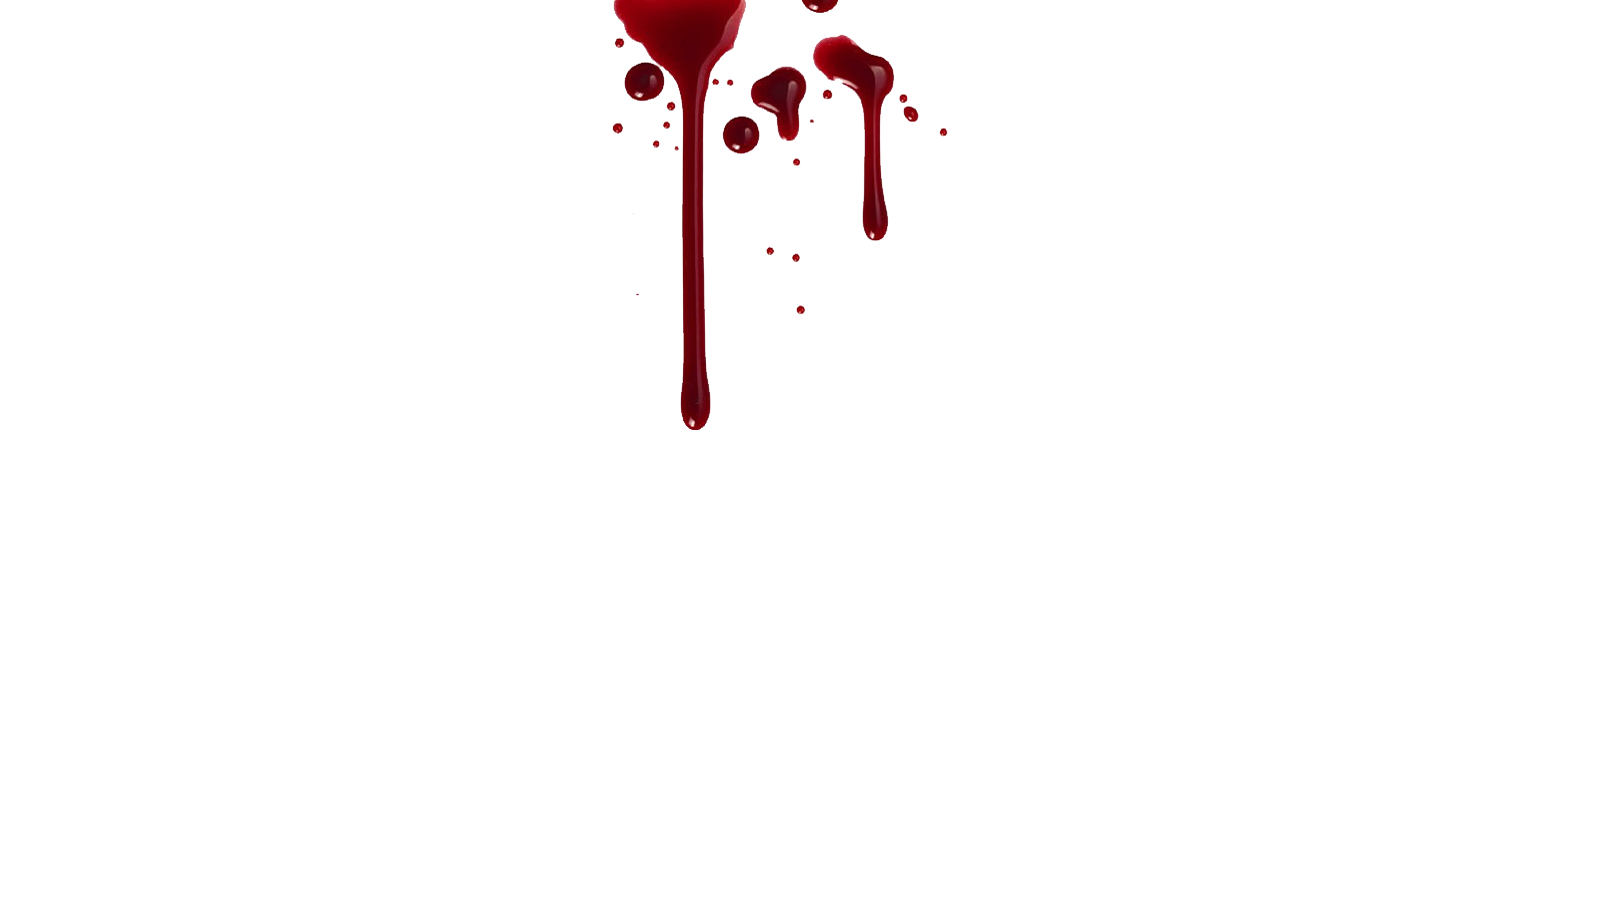 Blood tears png 5 » PNG Image.